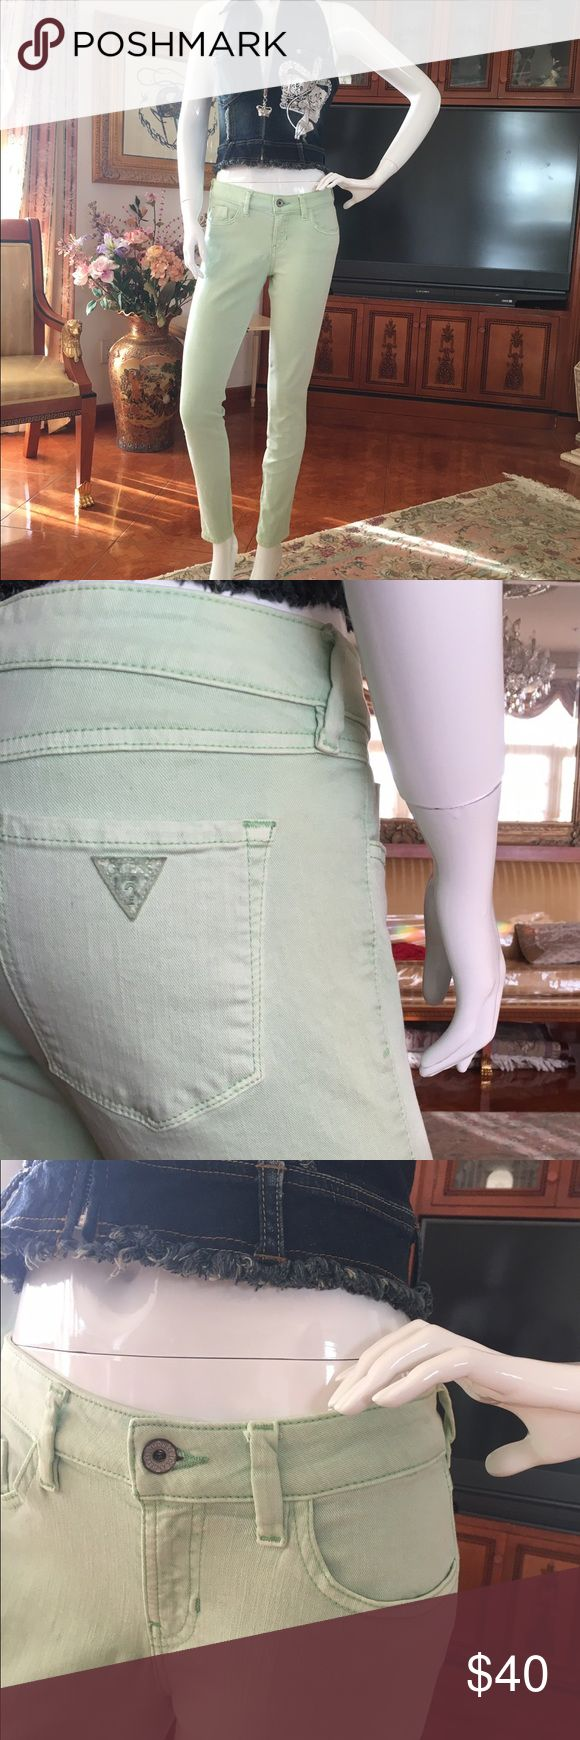 Guess women's skinny denim, pastel green pants denim light green women's skinny pants Guess Pants Skinny